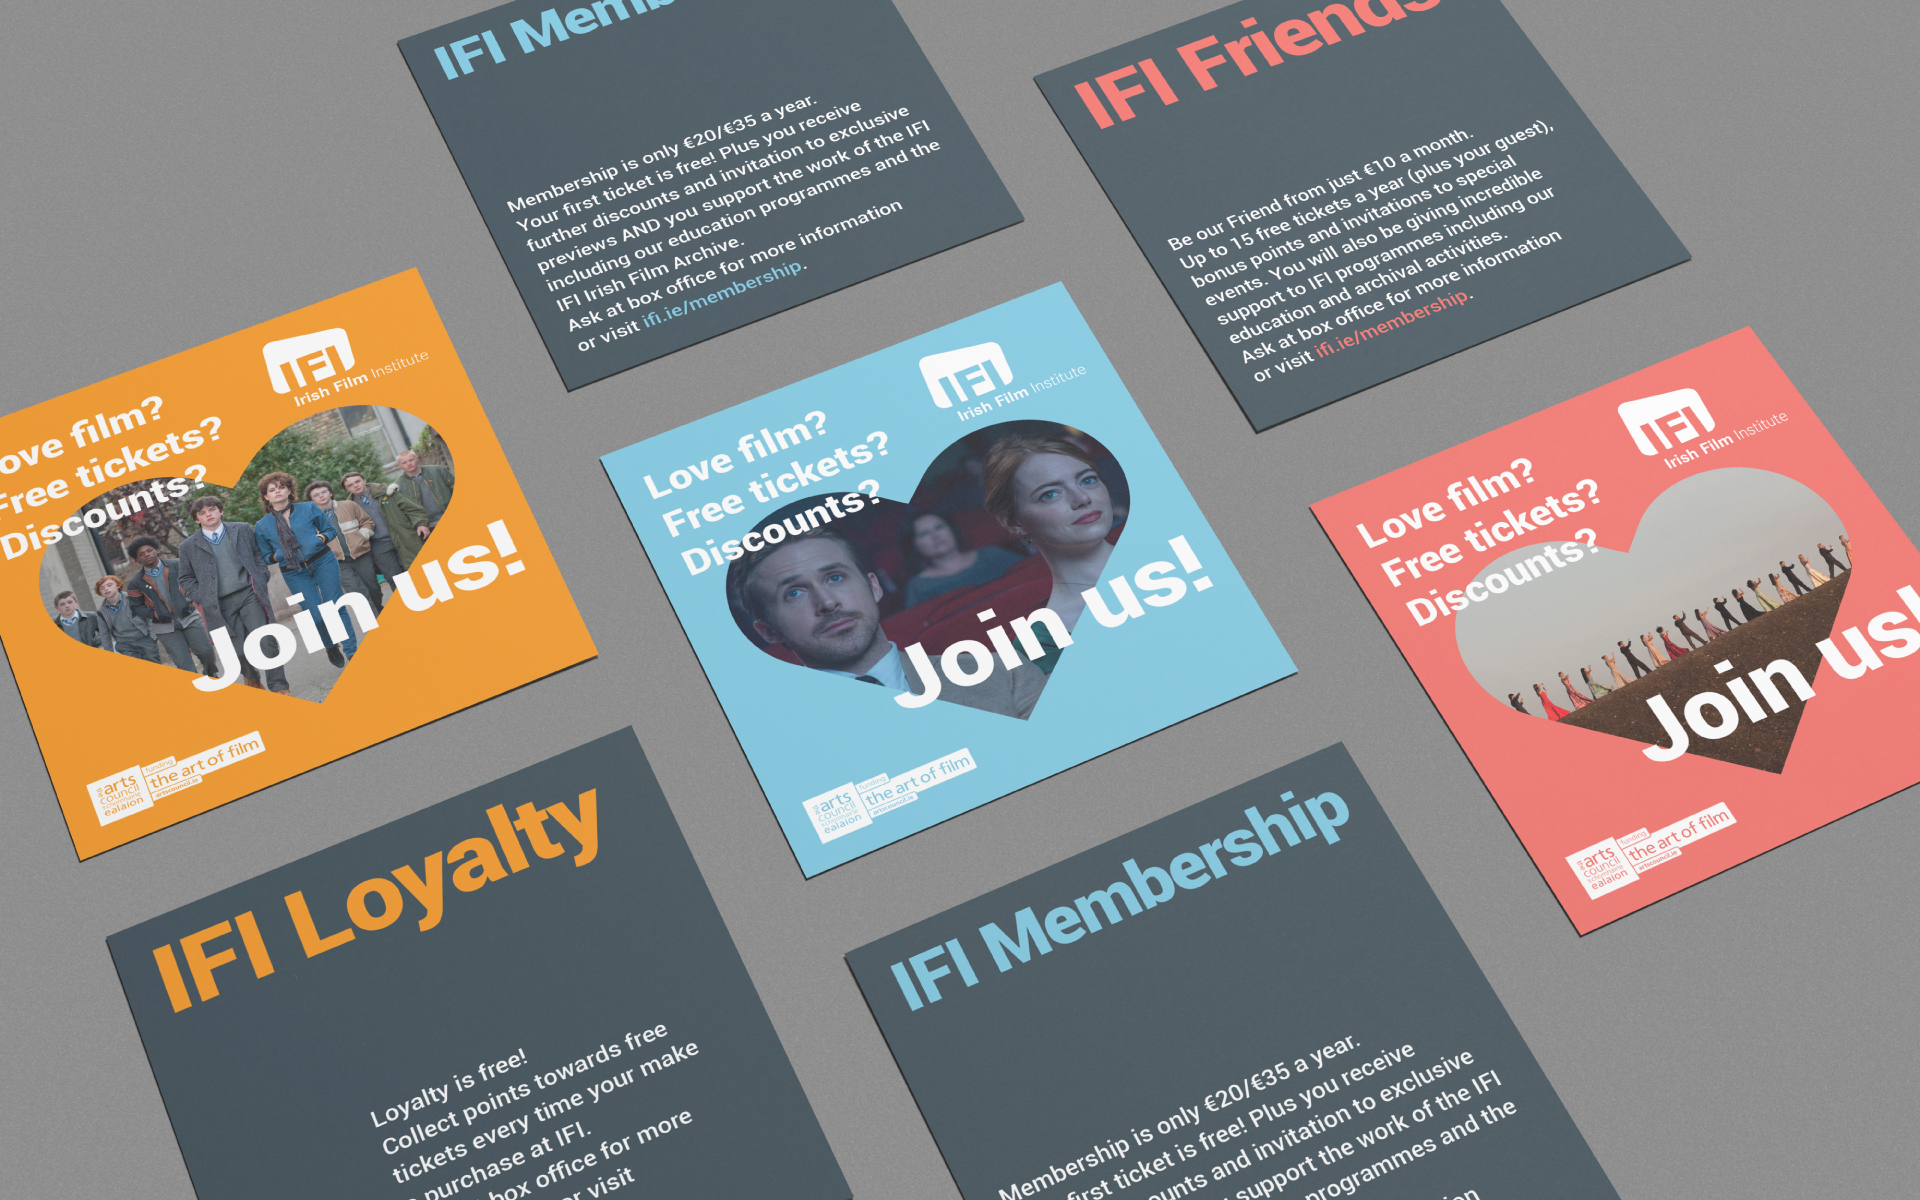 Irish Film Institute Membership marketing